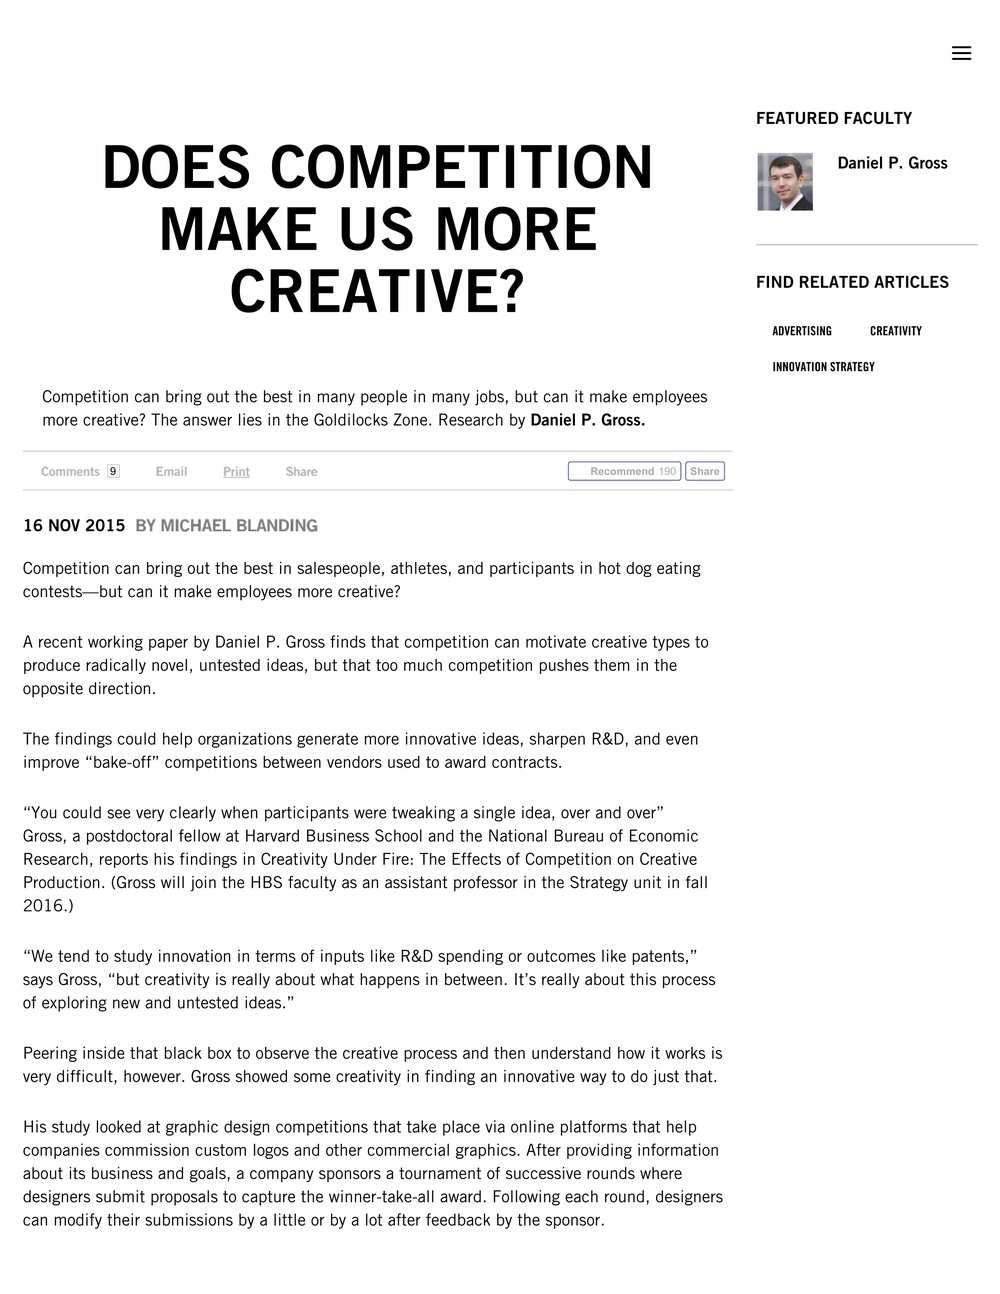 Does Competition Make Us More Creative? -